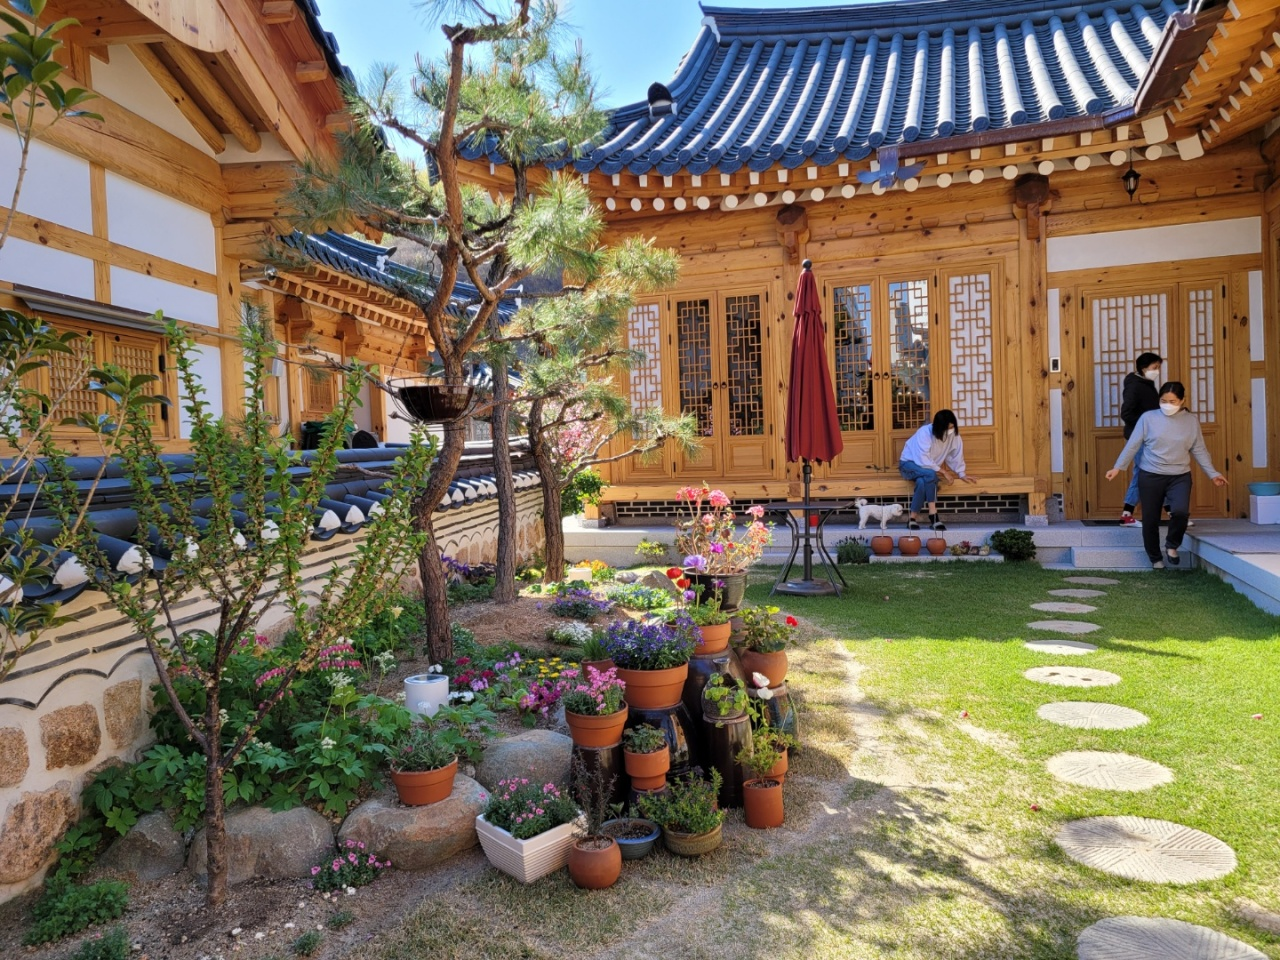 Residents of the hanok town in Sejong City interact with neighbors. (Park Yuna/The Korea Herald)